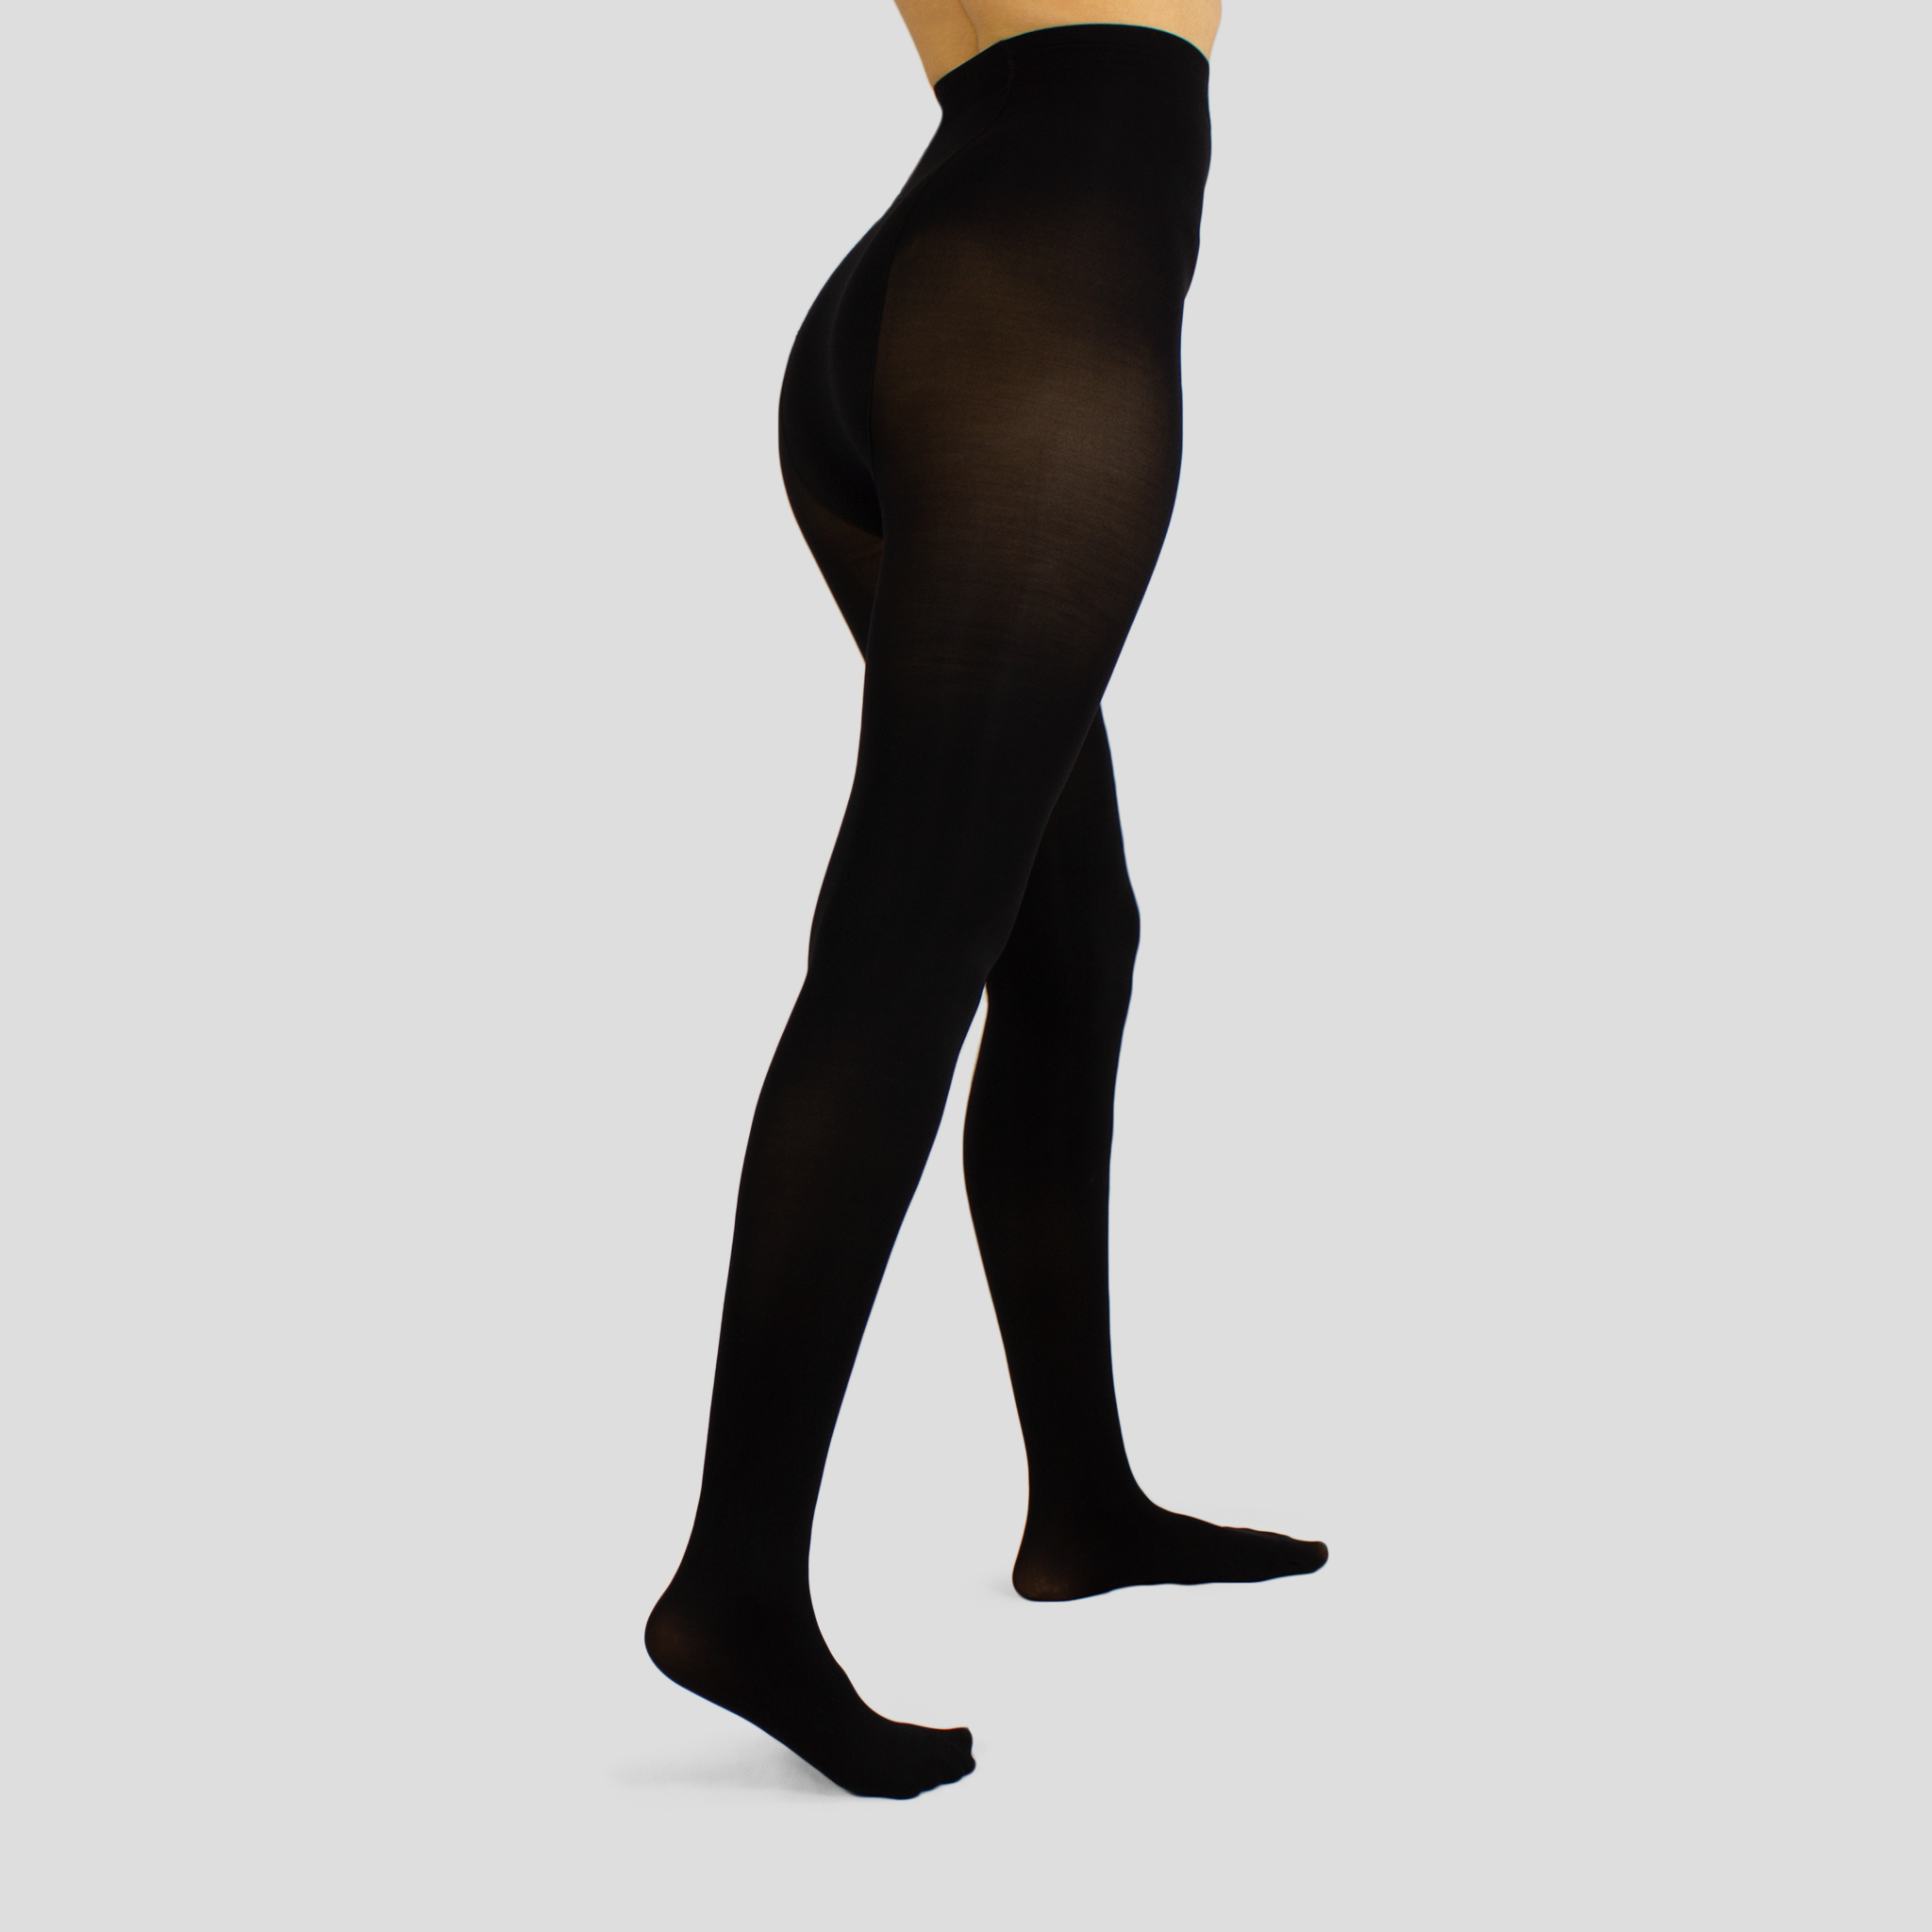 Opaque covered tights, colour black